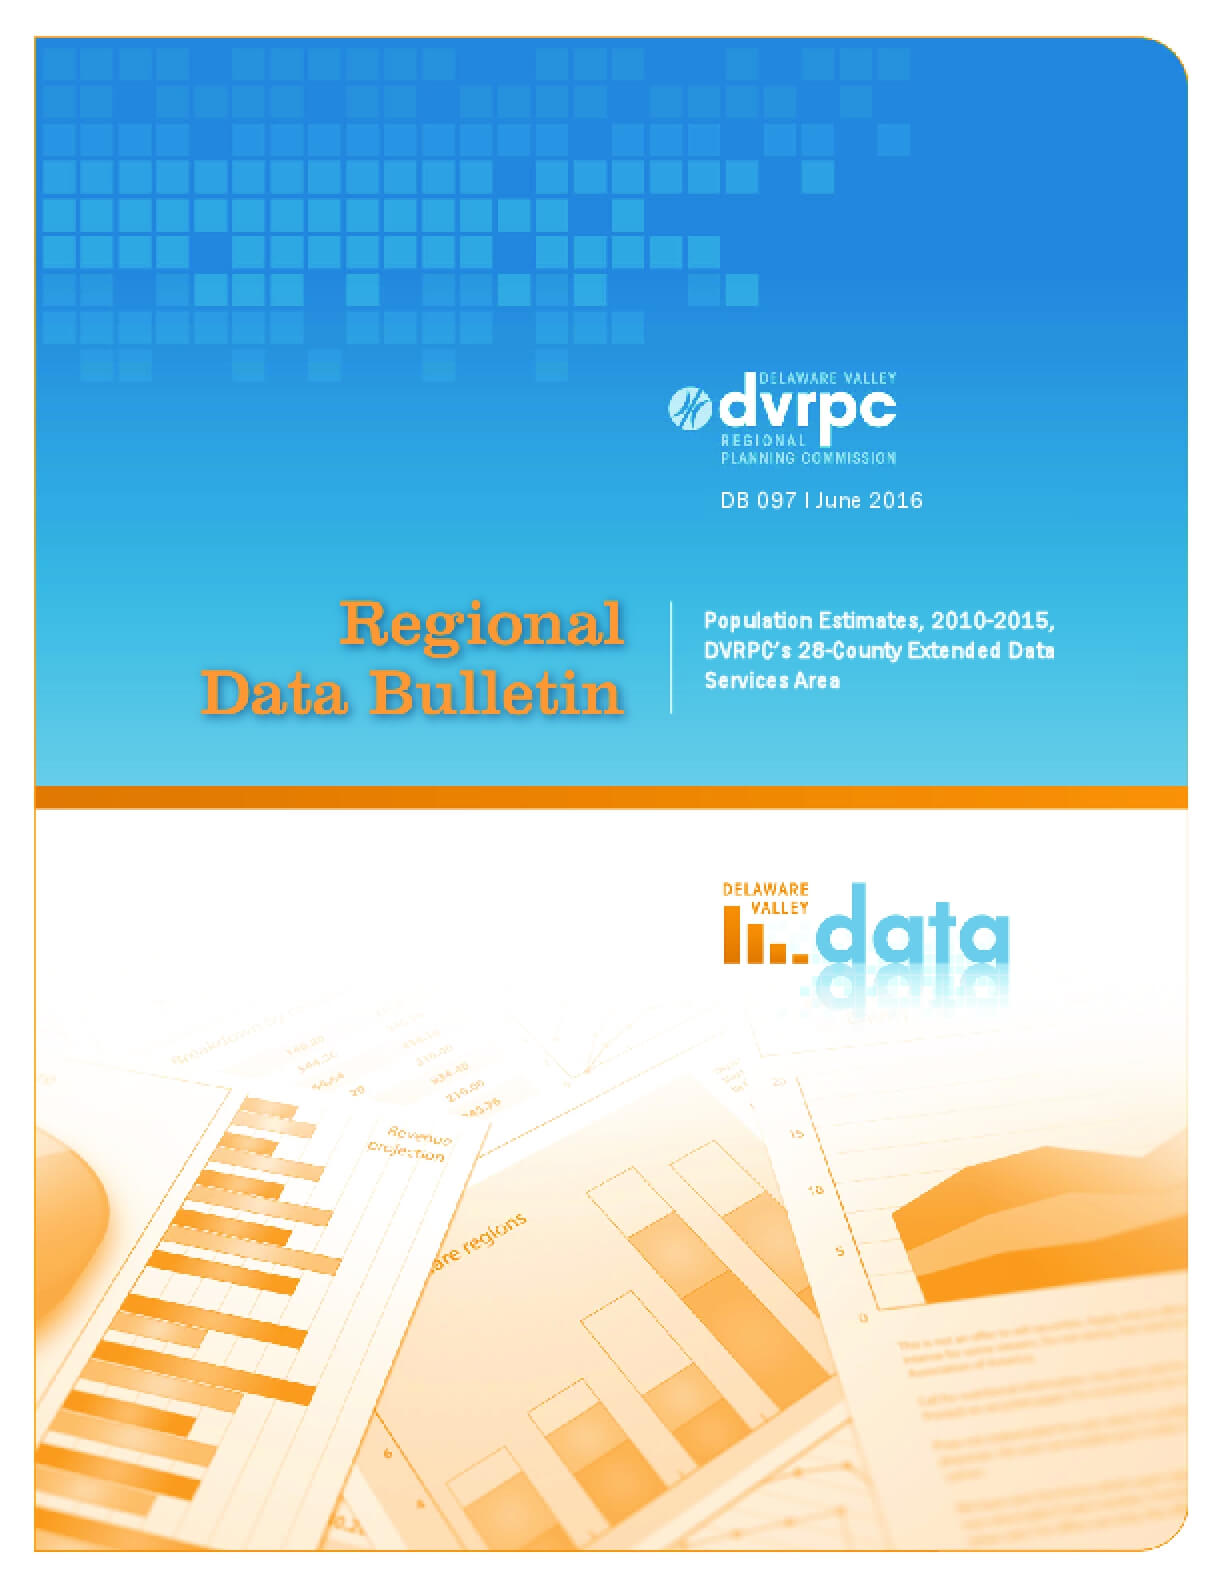 Population Estimates, 2010-2015, DVRPC's 28-County Extended Data Services Area